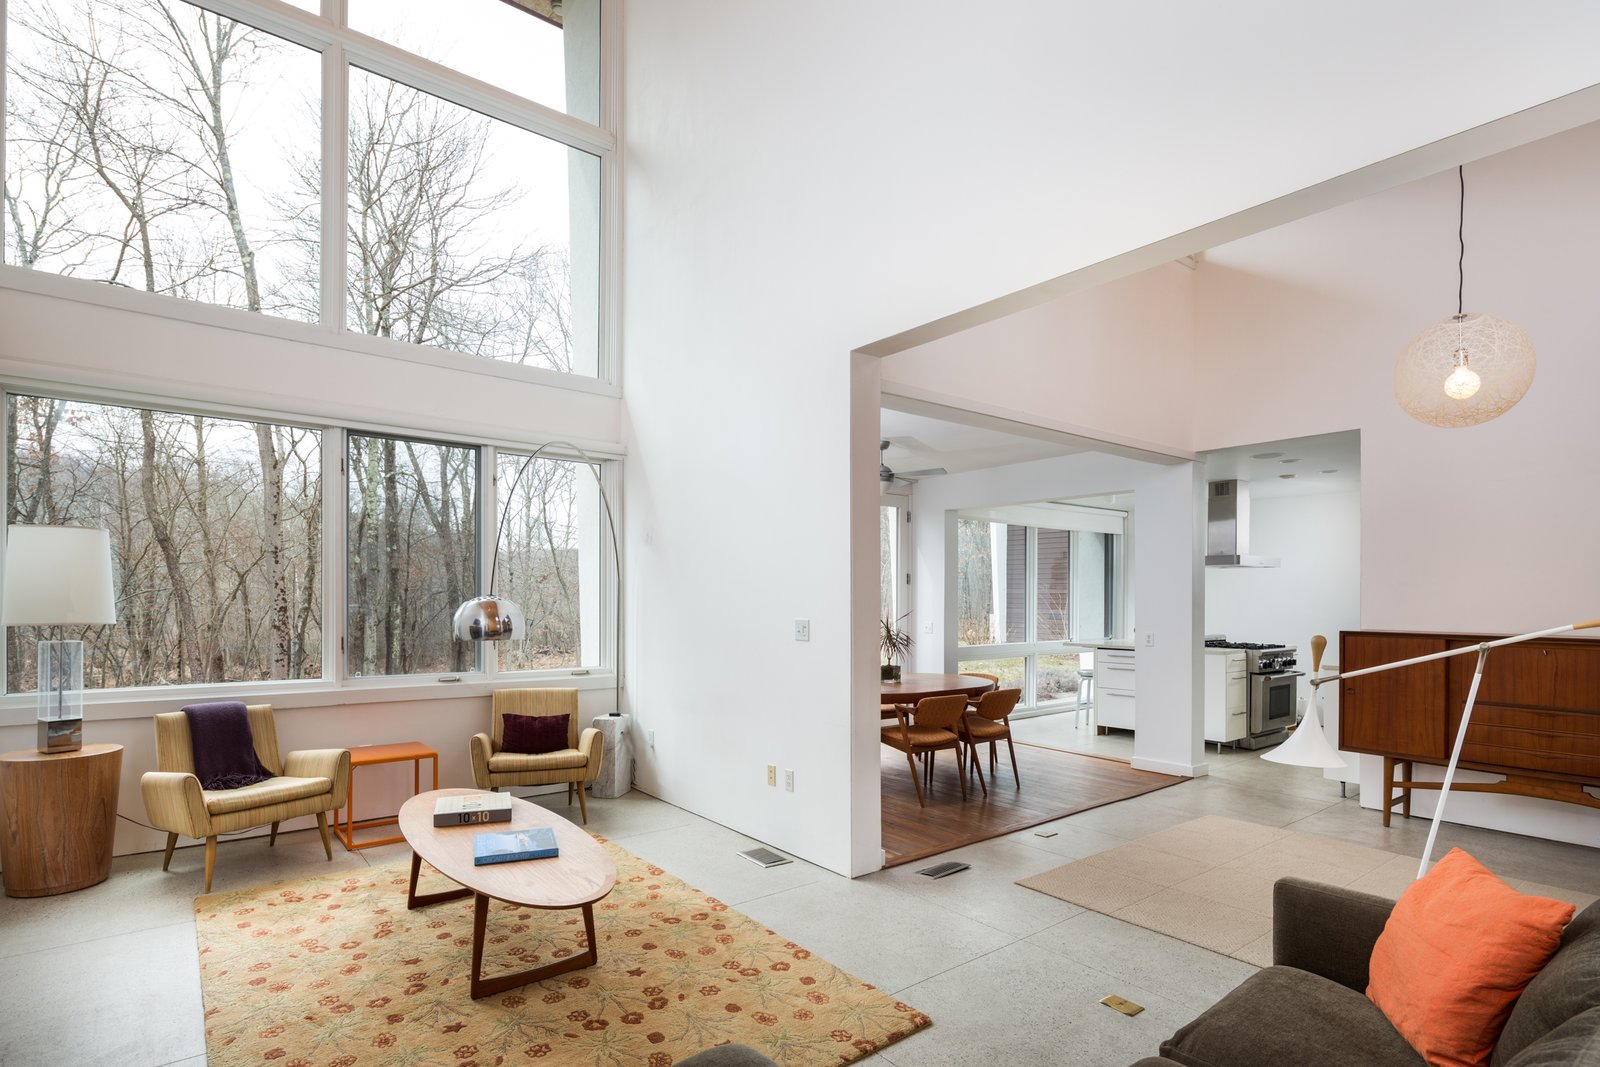 The open layout on the main level includes the living room with a fireplace, the dining room, and the kitchen.